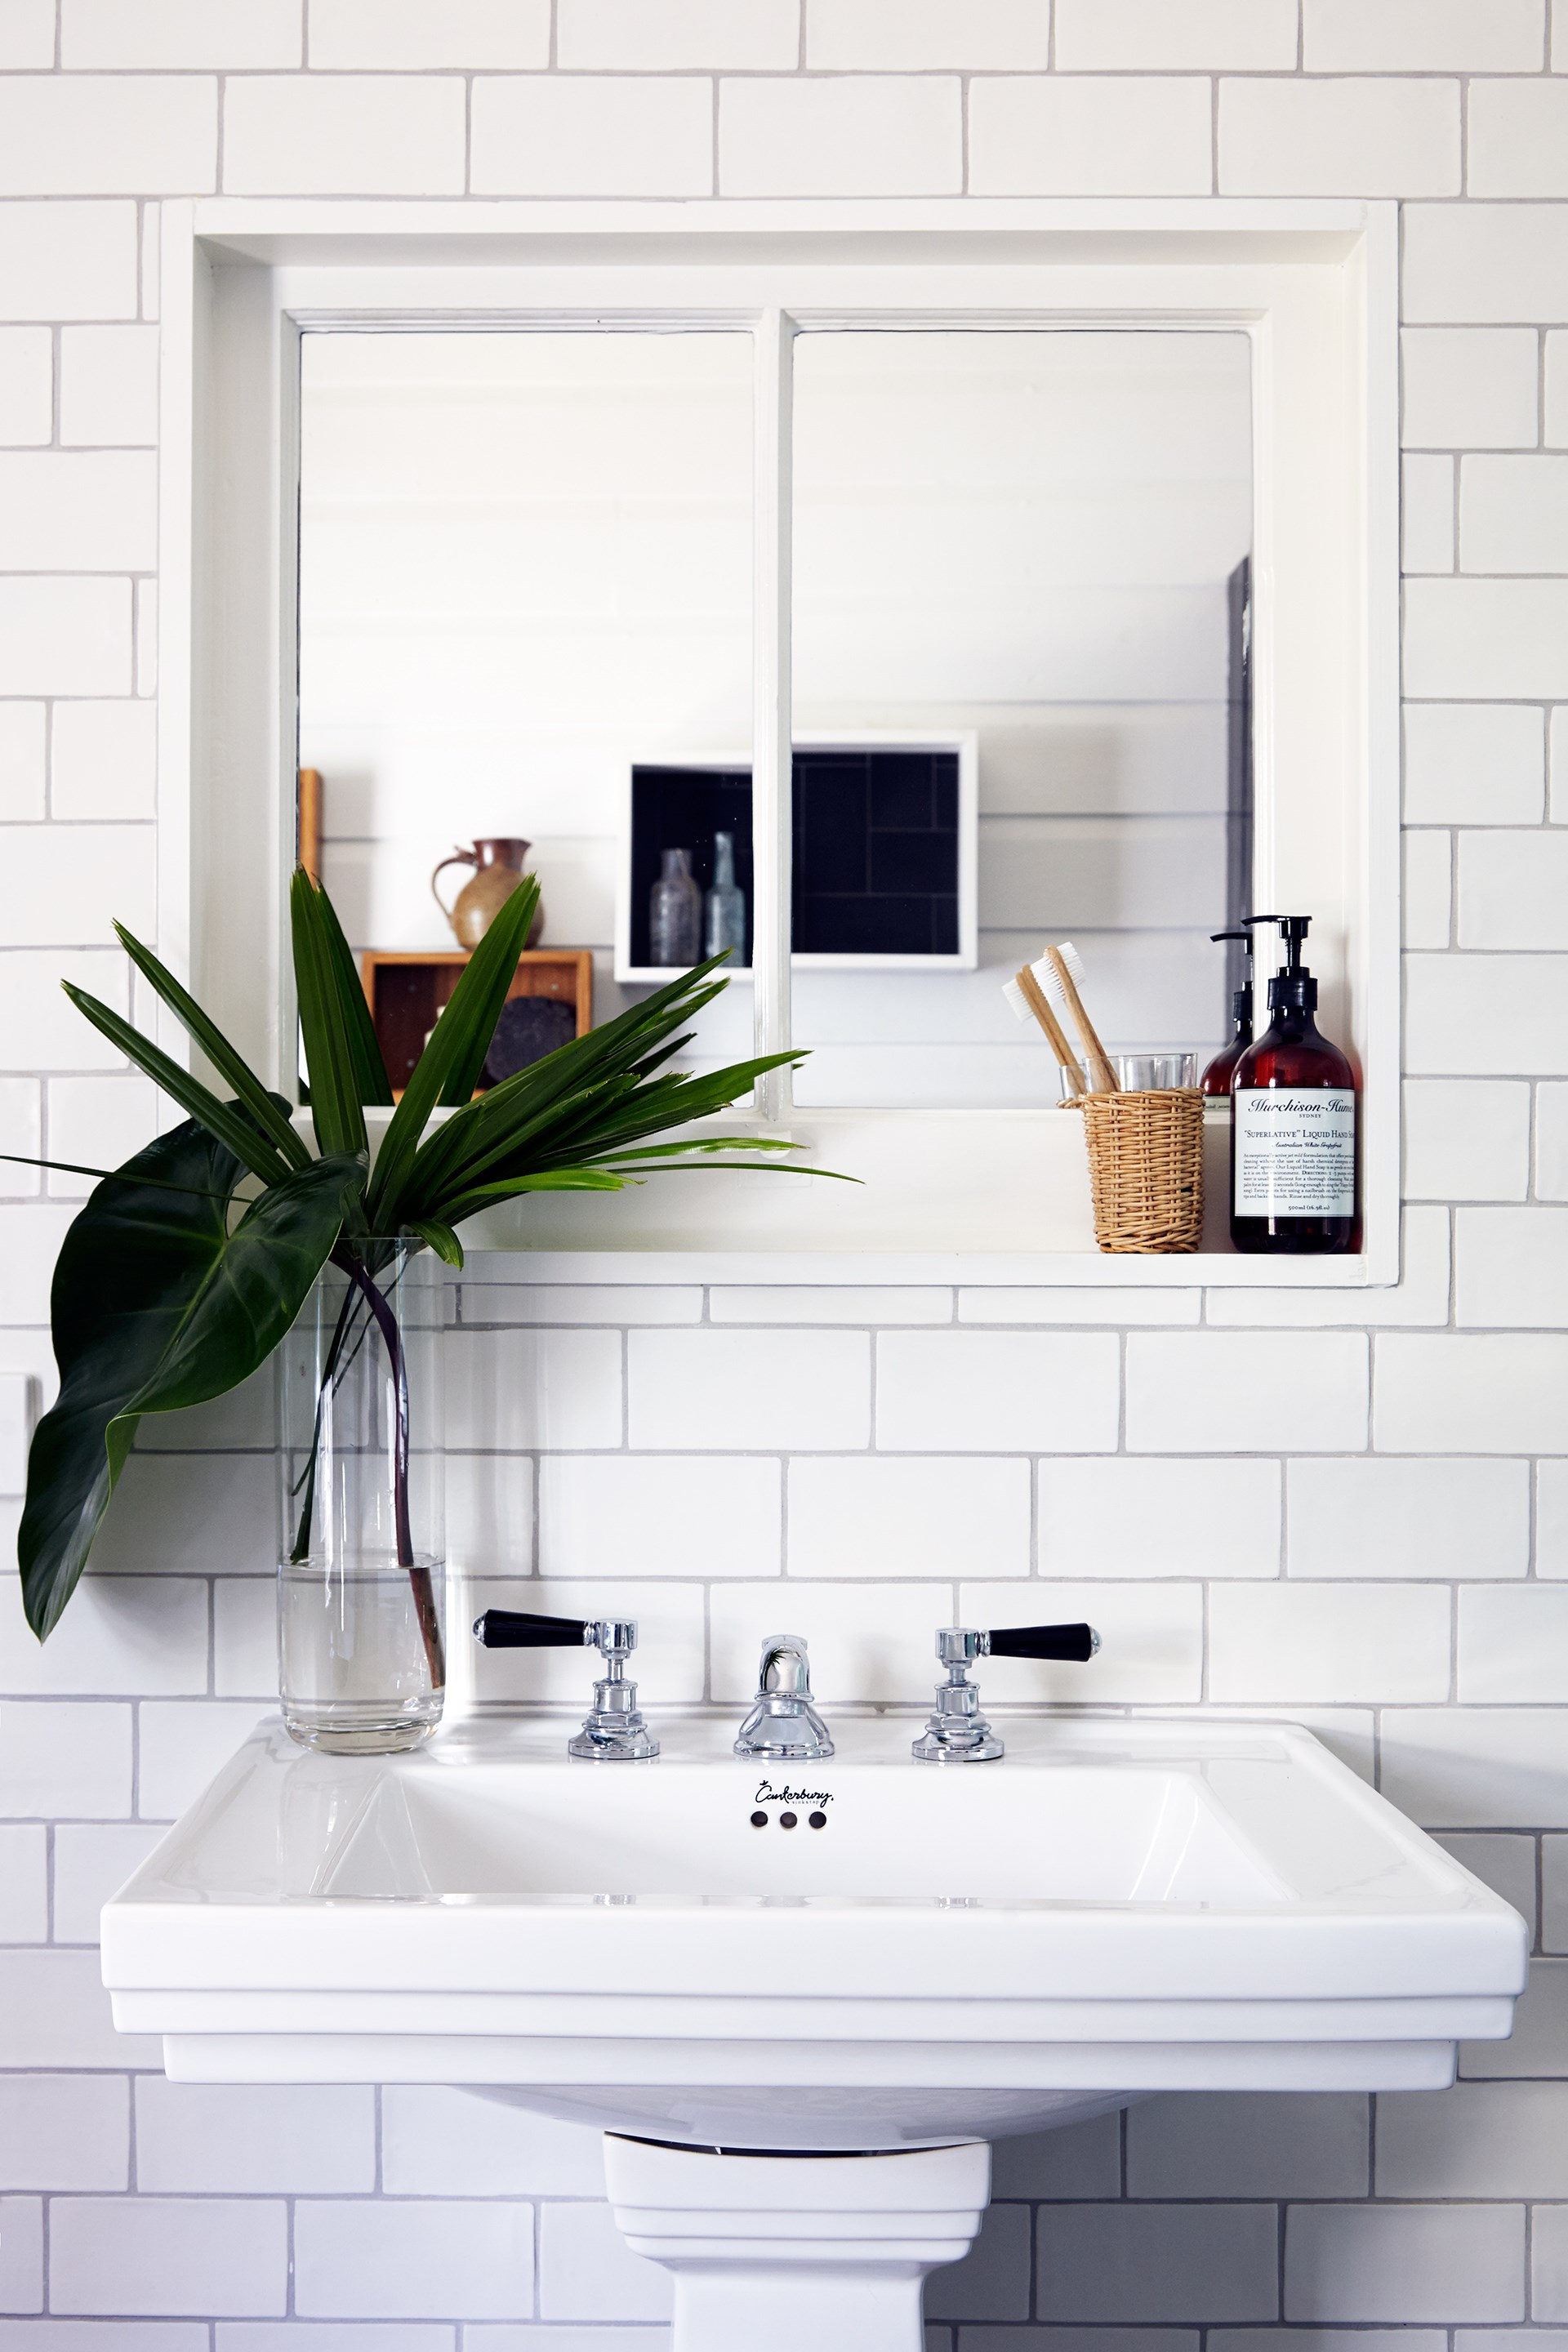 """Environmental considerations were key when [the owners of this 19th-century Brisbane cottage added a new bathroom](http://www.homestolove.com.au/a-brisbane-cottage-gets-an-eco-bathroom-renovation-1650 target=""""_blank""""). A pedestal basin was bought at a builder's yard and re-enamelled. The taps by [Brodware Industries](http://www.brodware.com.au/ target=""""_blank"""") have the maximum Water Efficiency Labelling and Standards Scheme (WELS) rating of six stars."""